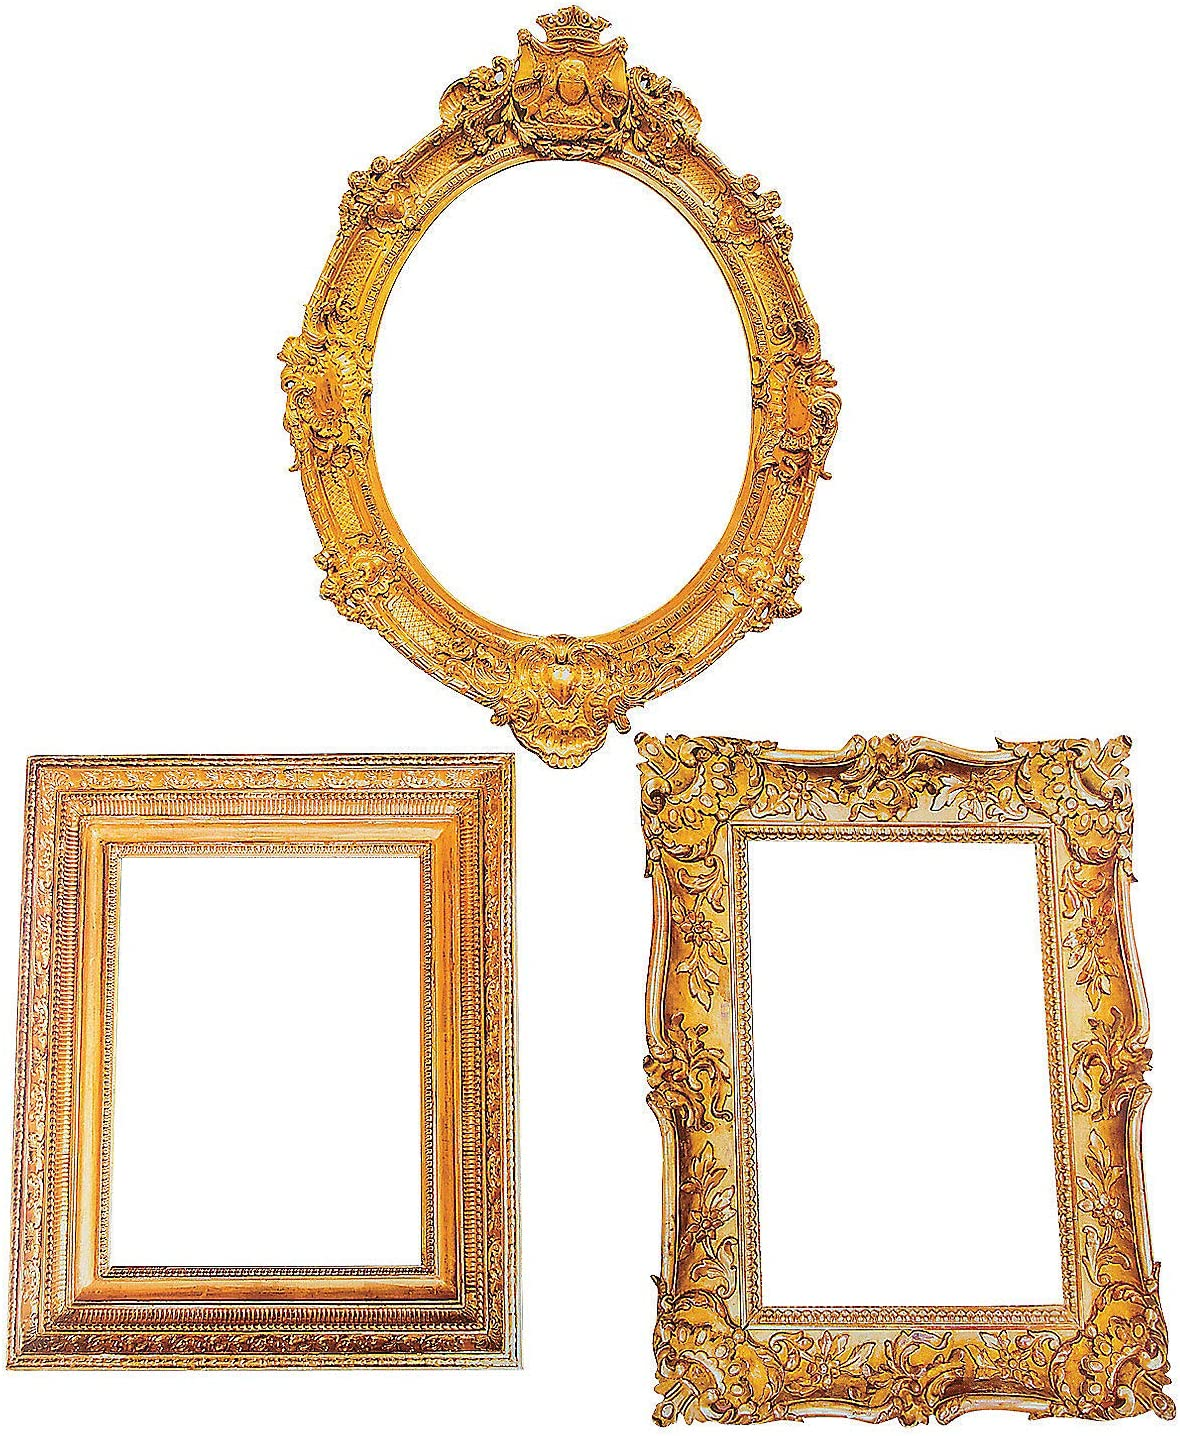 Antique Picture Frame Cutouts (3 Pieces) Perfect for Wedding and Party Decor - Cardboard